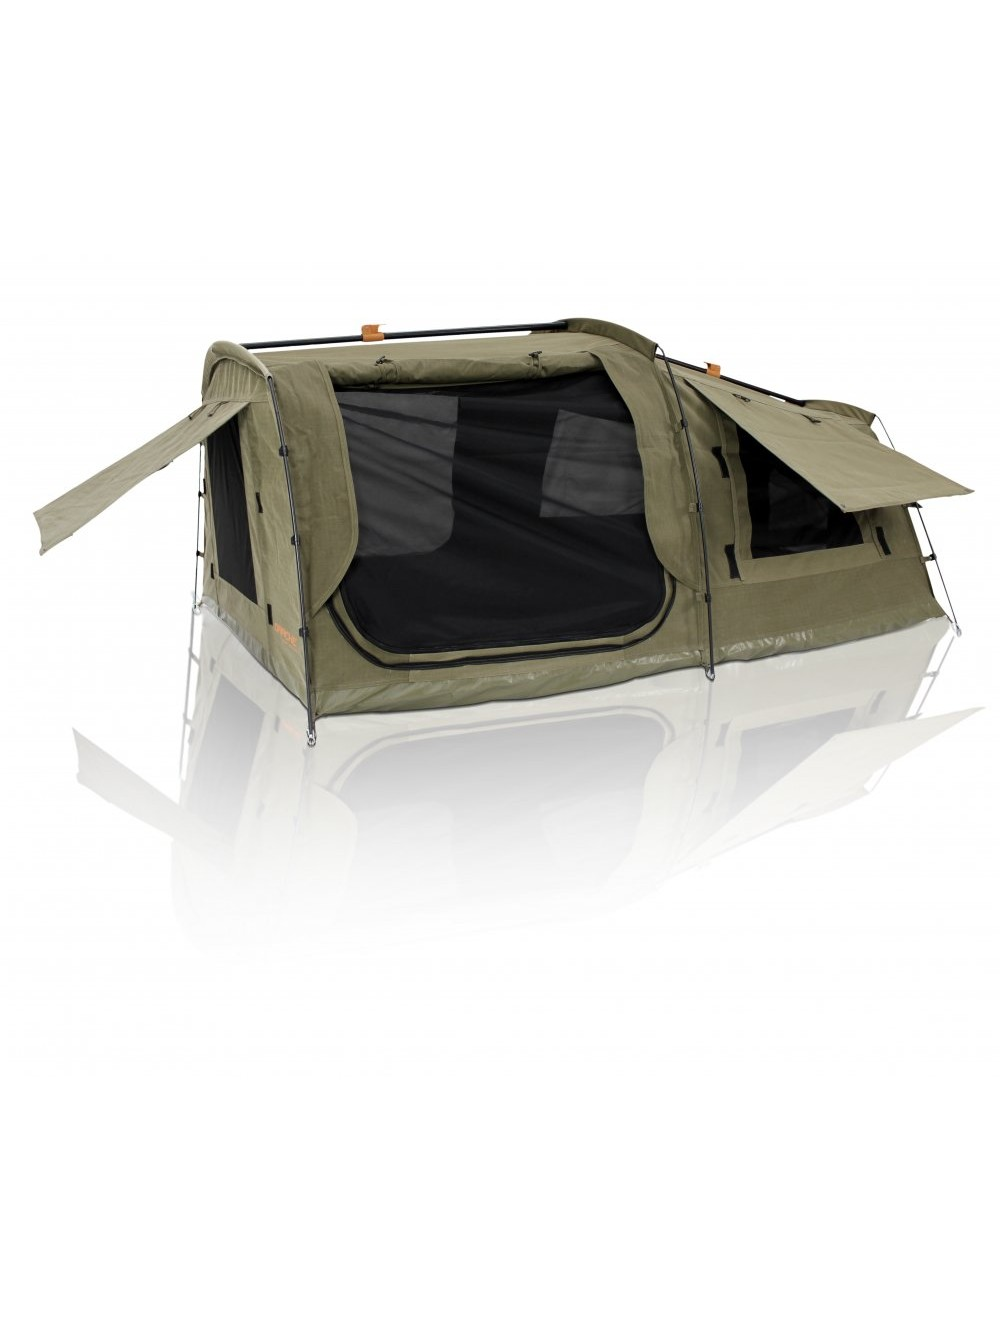 4Wd Awning Tent t050801207 - dirty dee 900 swag - tents & swags - awnings